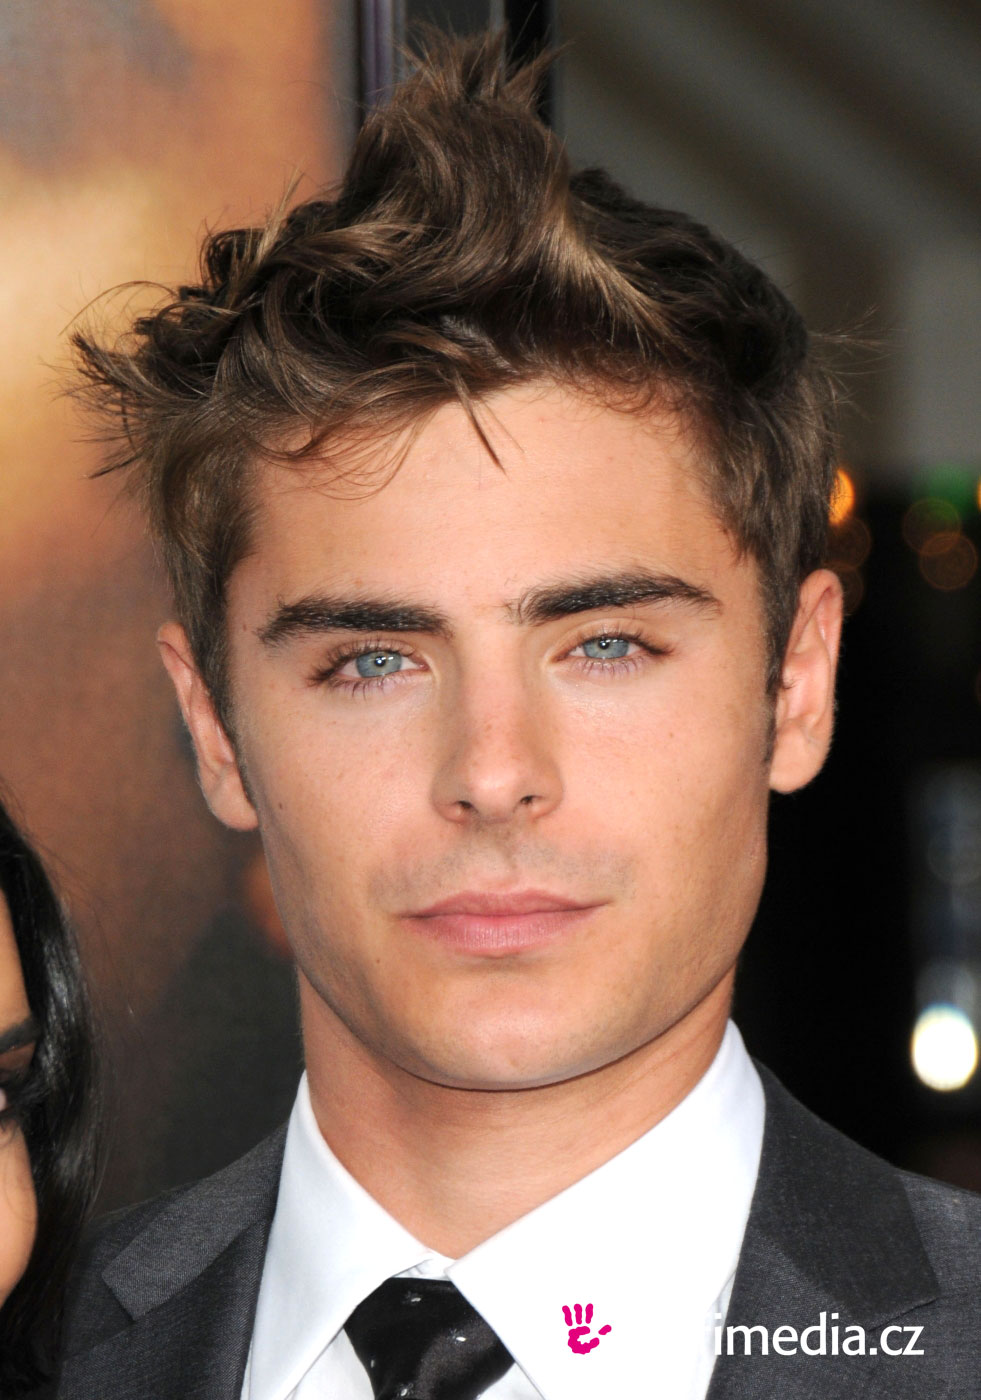 Zac Efron Hairstyle 2012 Zac Efron Pictures Latest Technology News